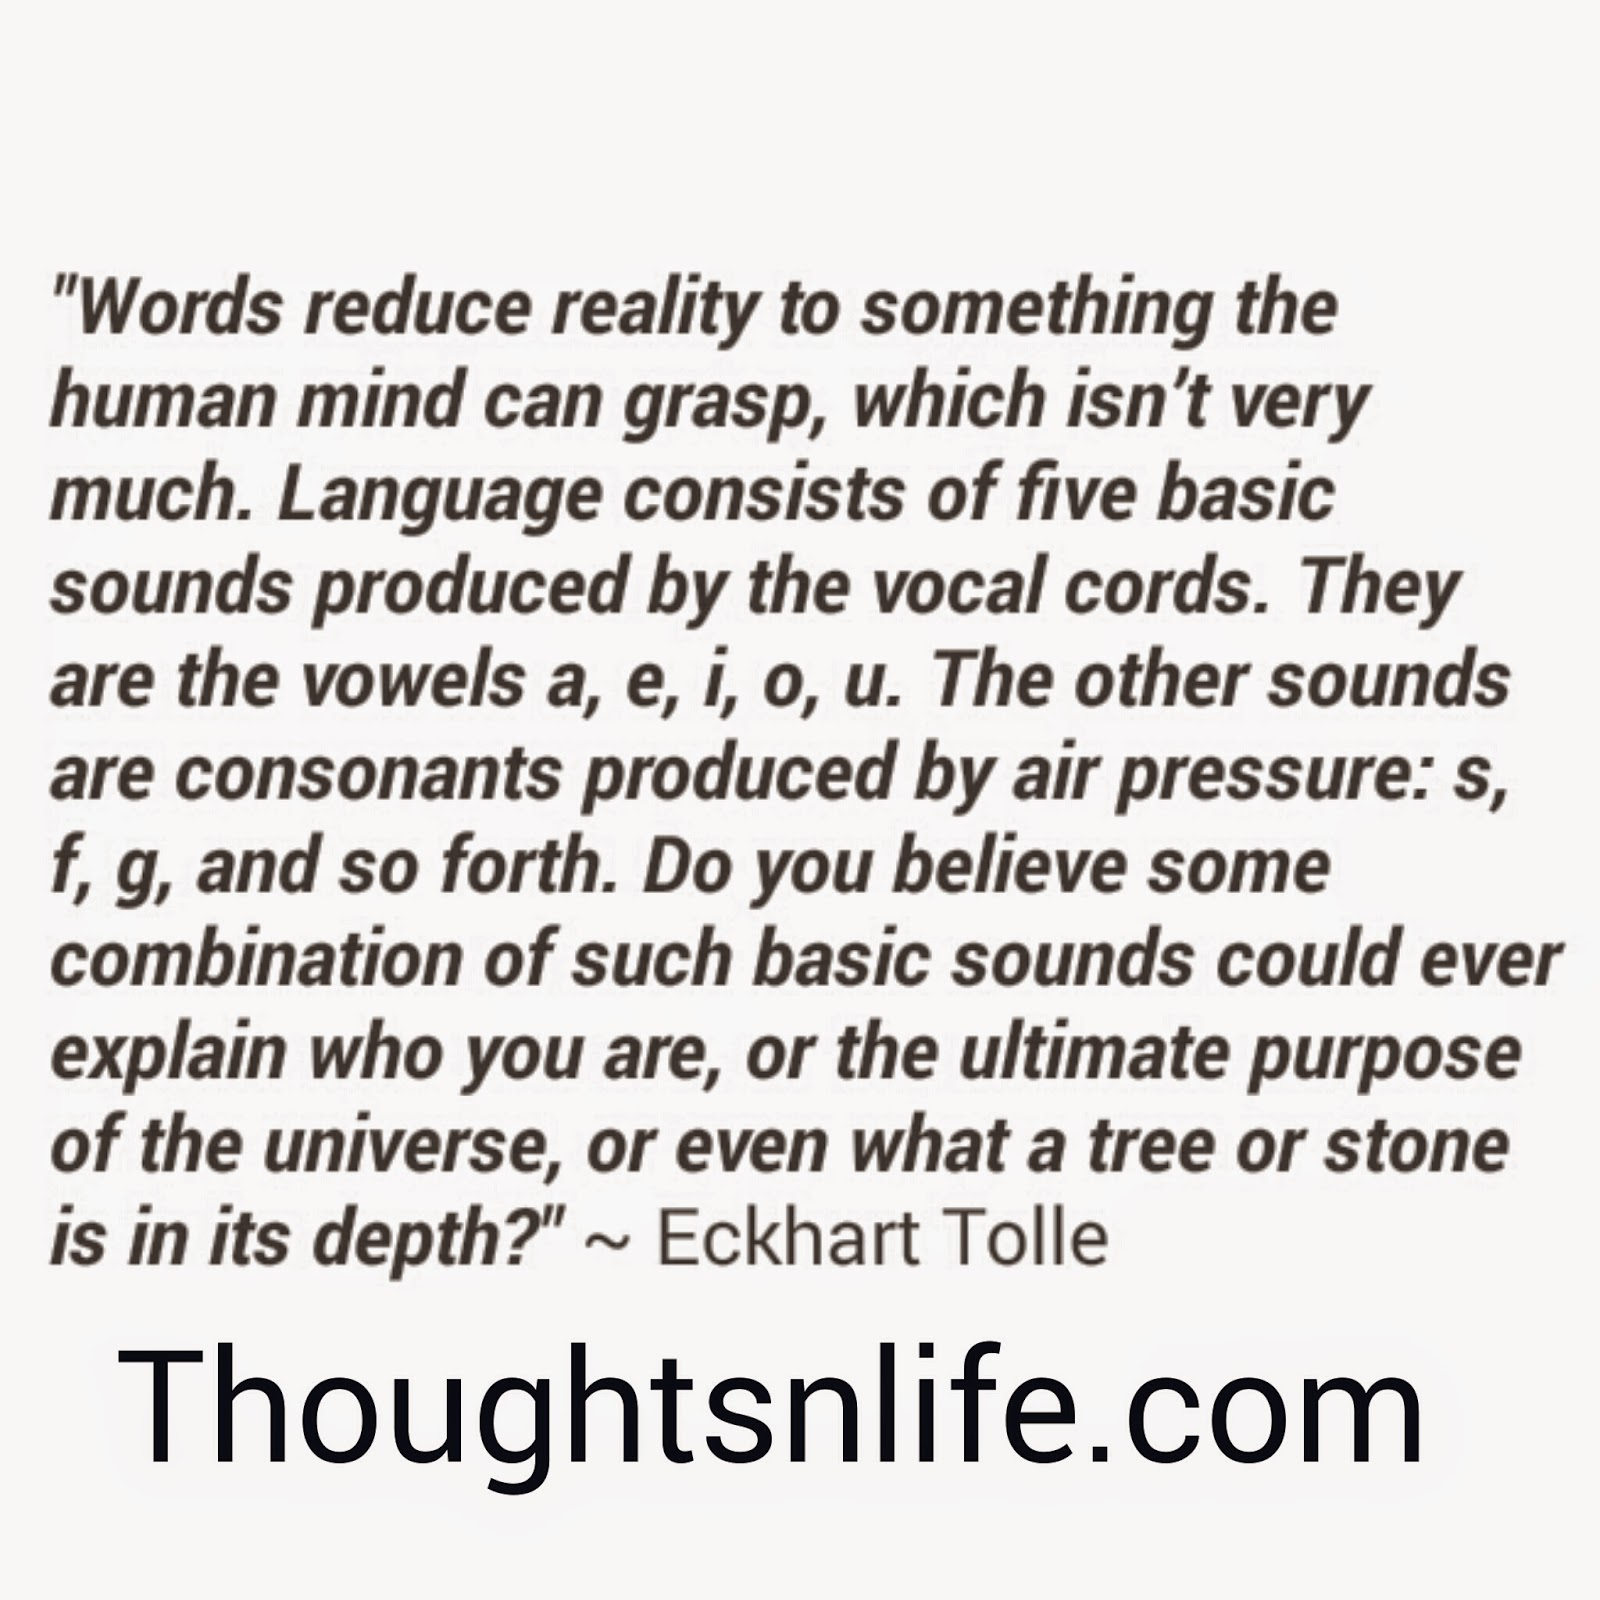 Eckhart Tolle,  Eckhart Tolle quotes, daily spiritual quotes, eckhart tolle quotes a new earth